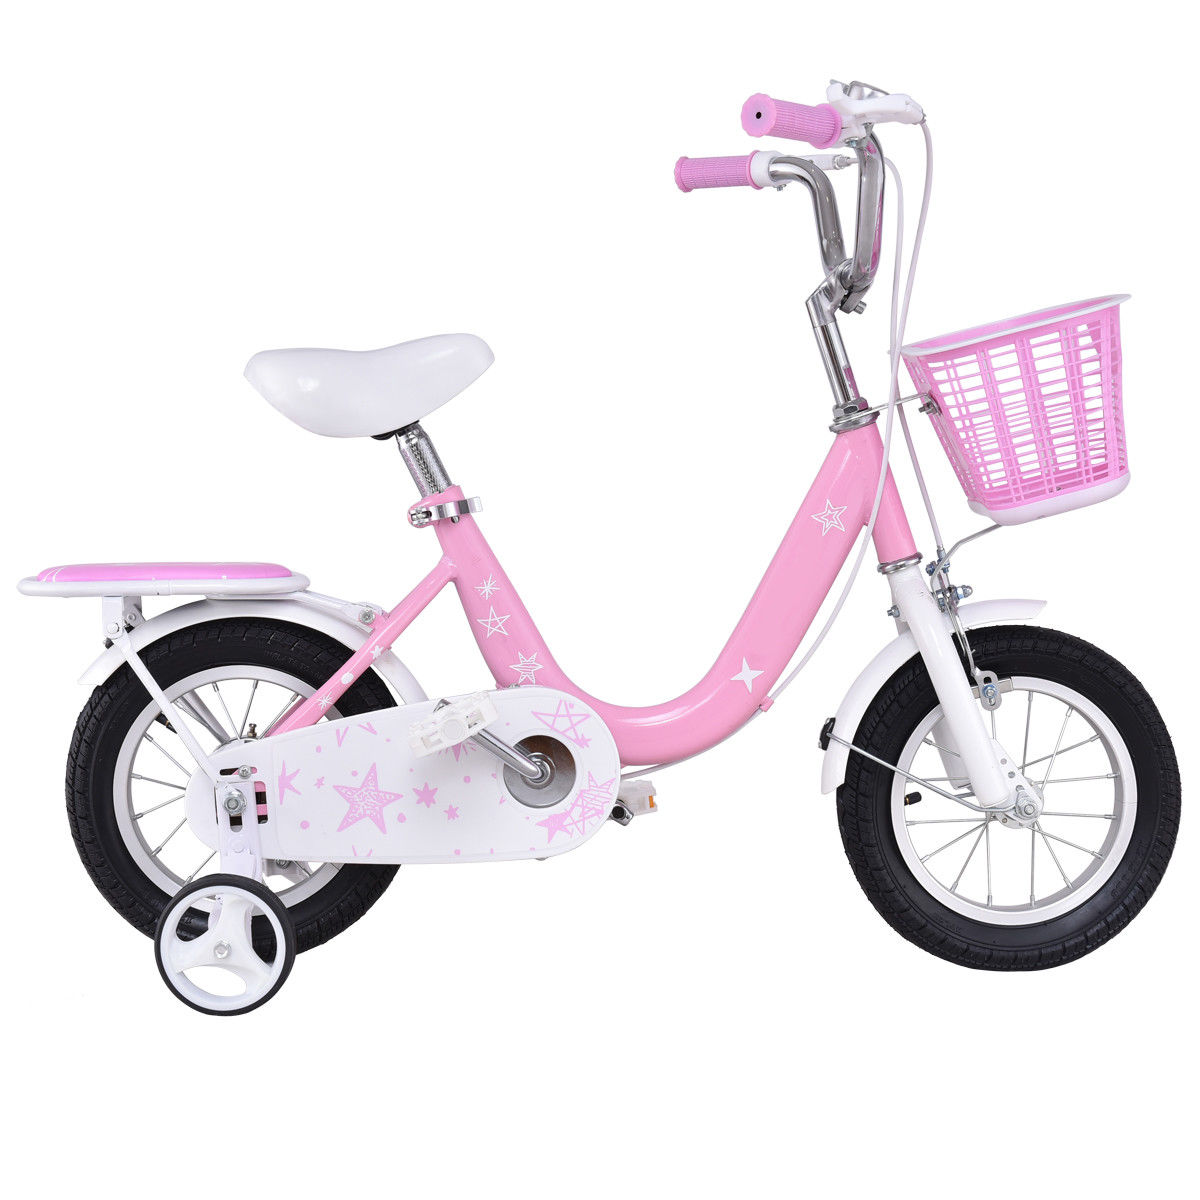 Costway 12'' Kids Bike Bicycle Children Boys & Girls with Training Wheels and Basket Pink by Costway